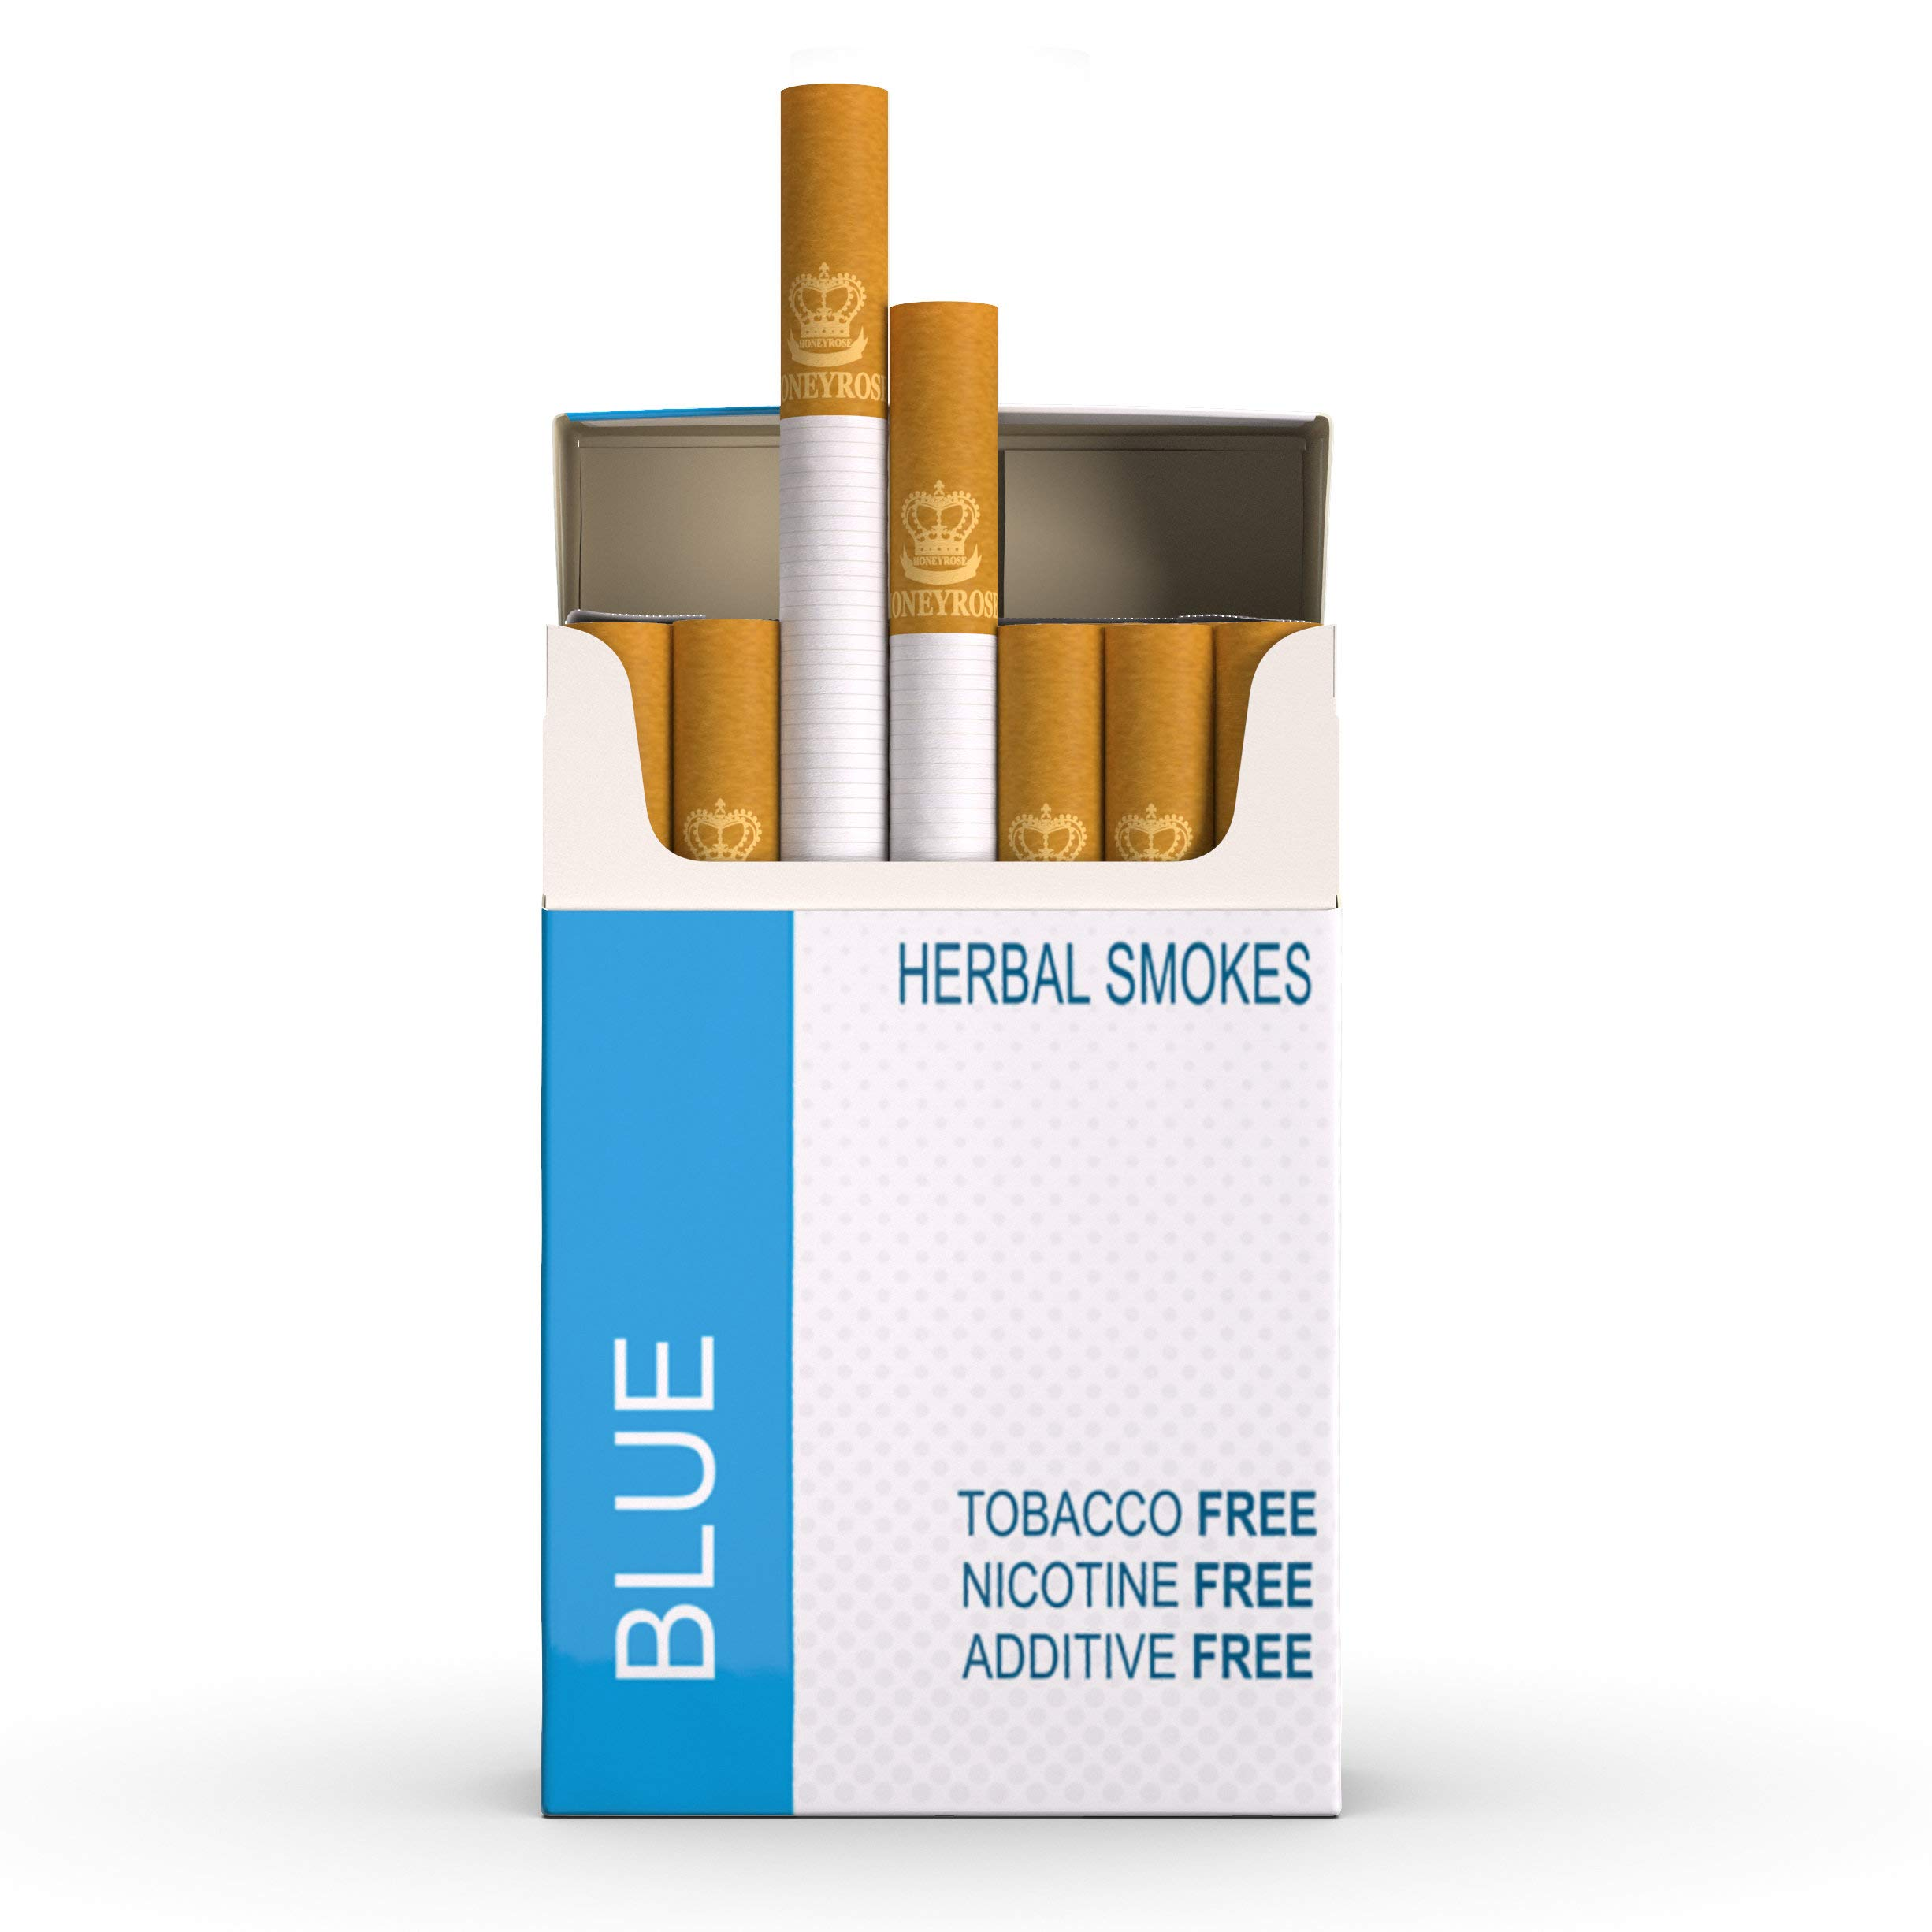 Honeyrose Blue - Tobacco & Nicotine Free Herbal Cigarettes, Made in England